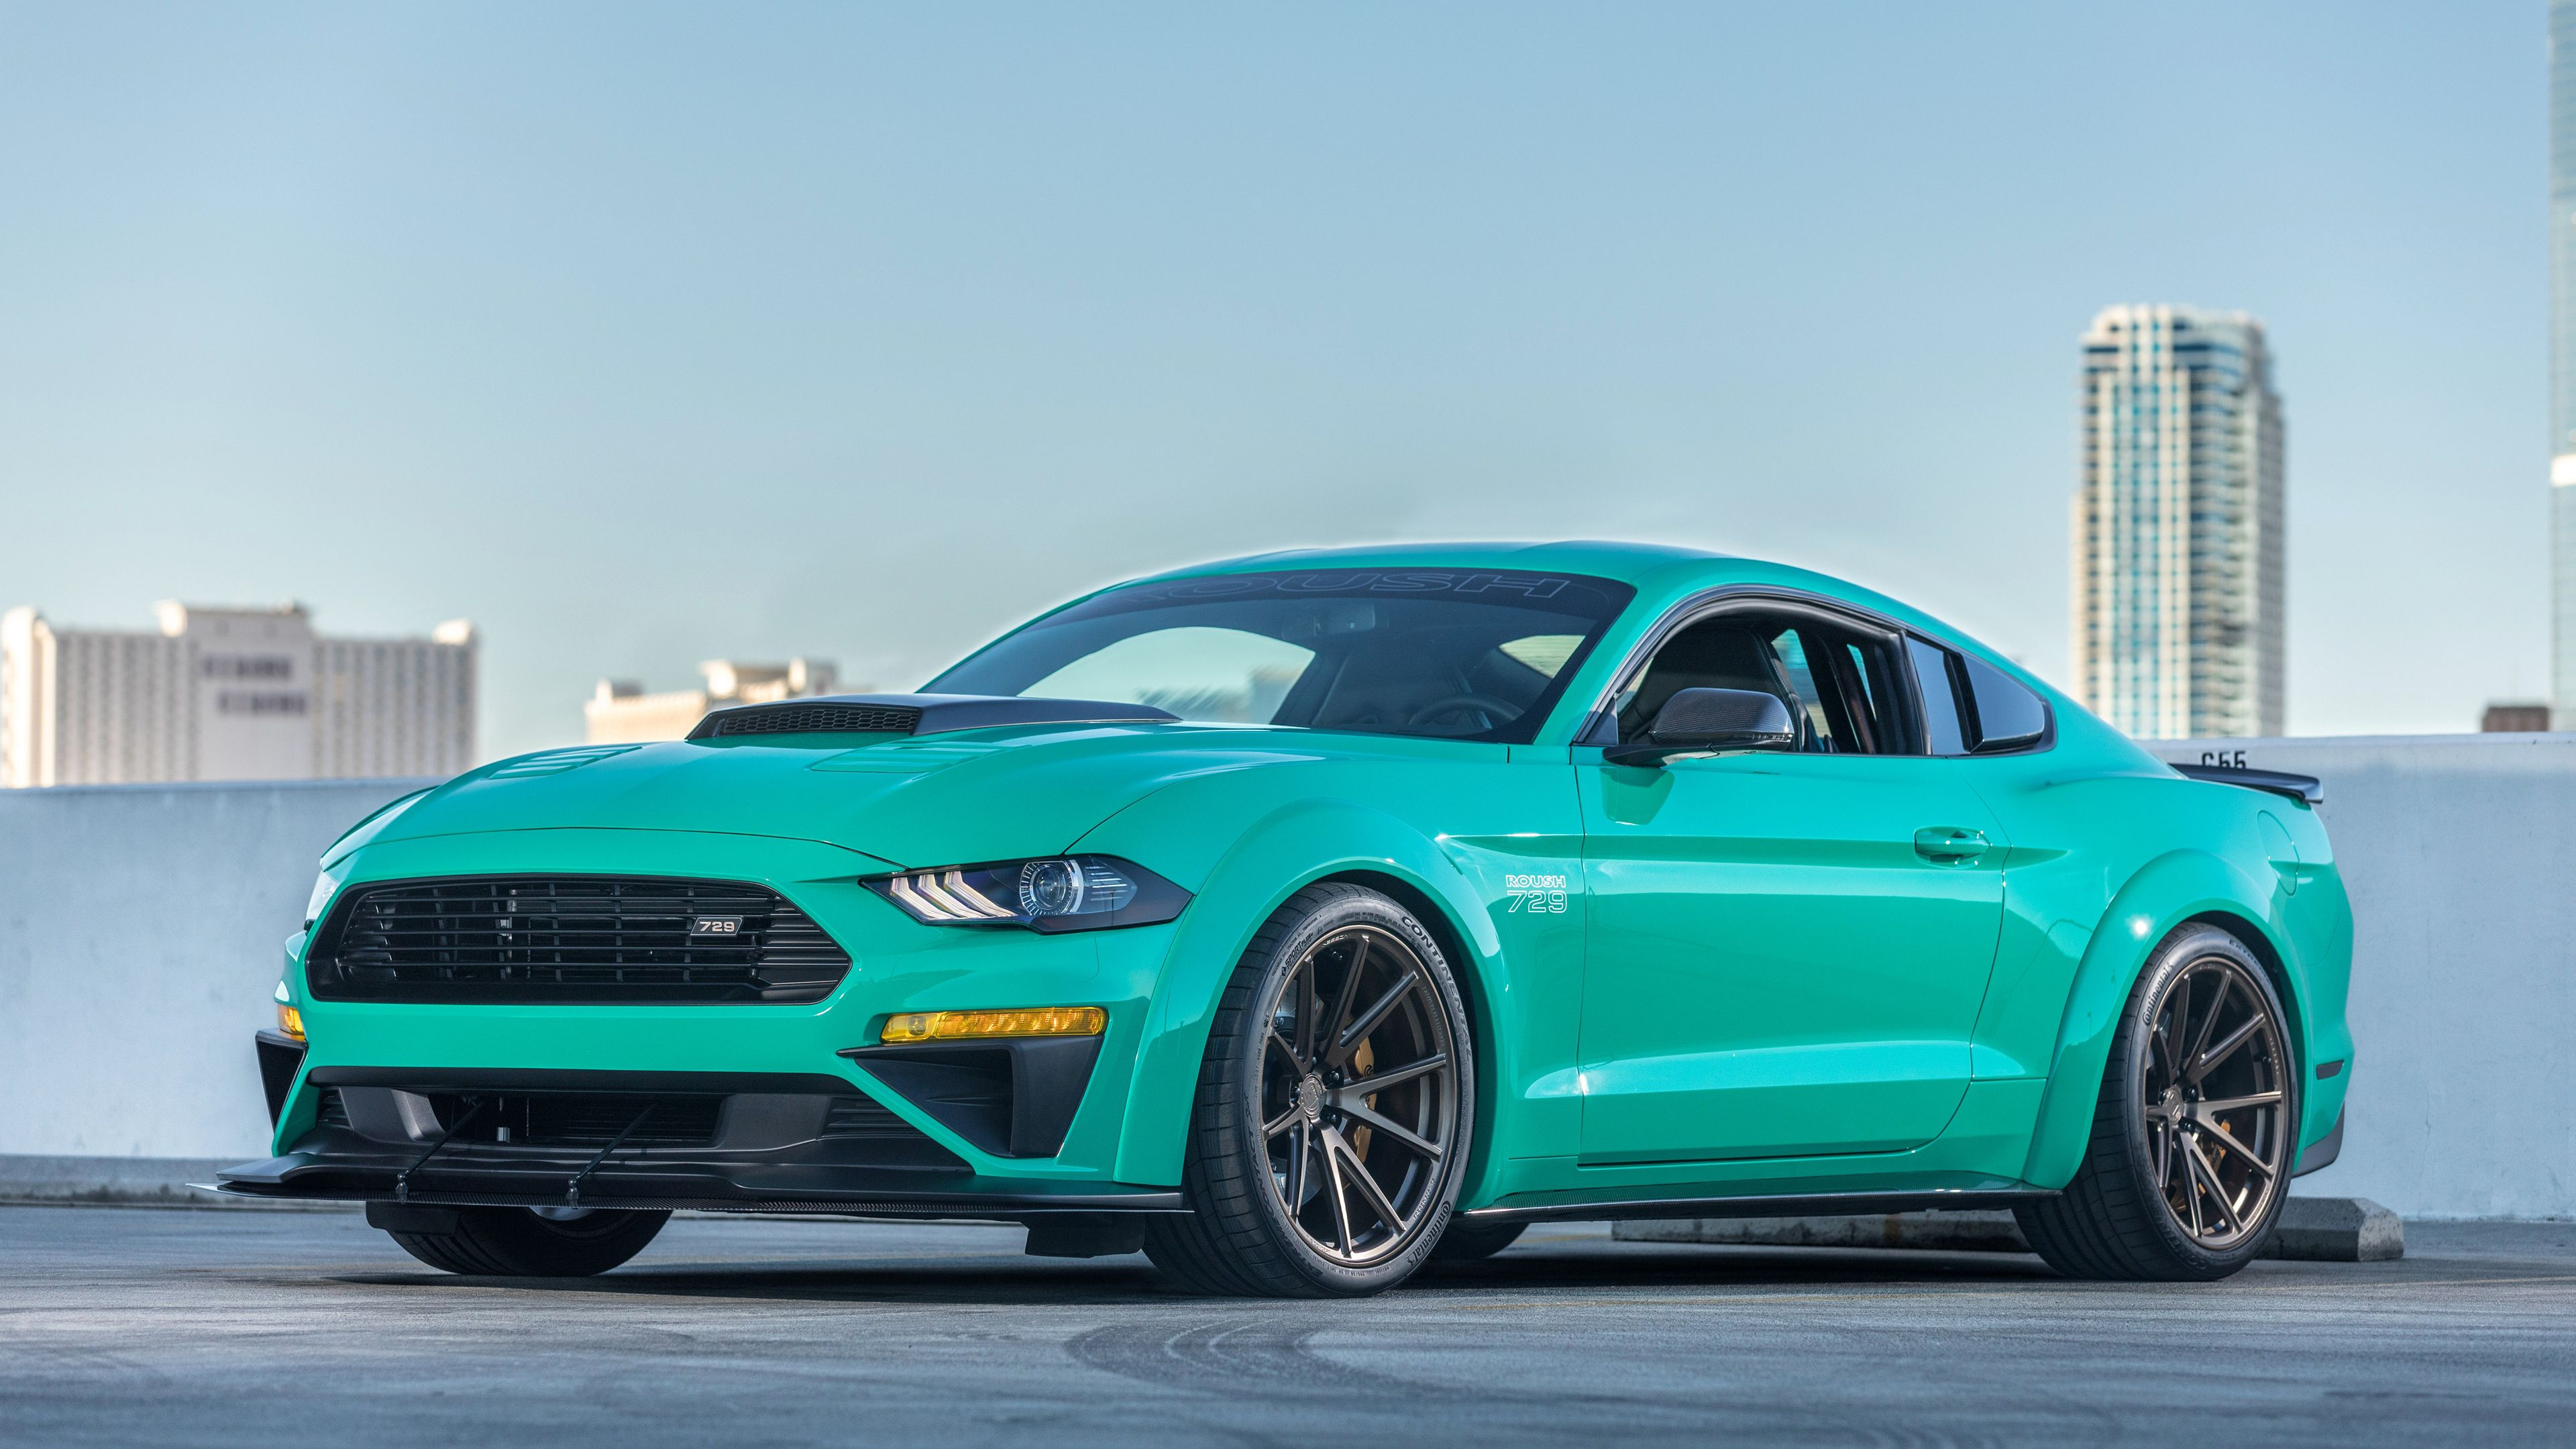 Ford Mustang 2018 Hd Wallpapers Ford Mustang Wallpapers Cars